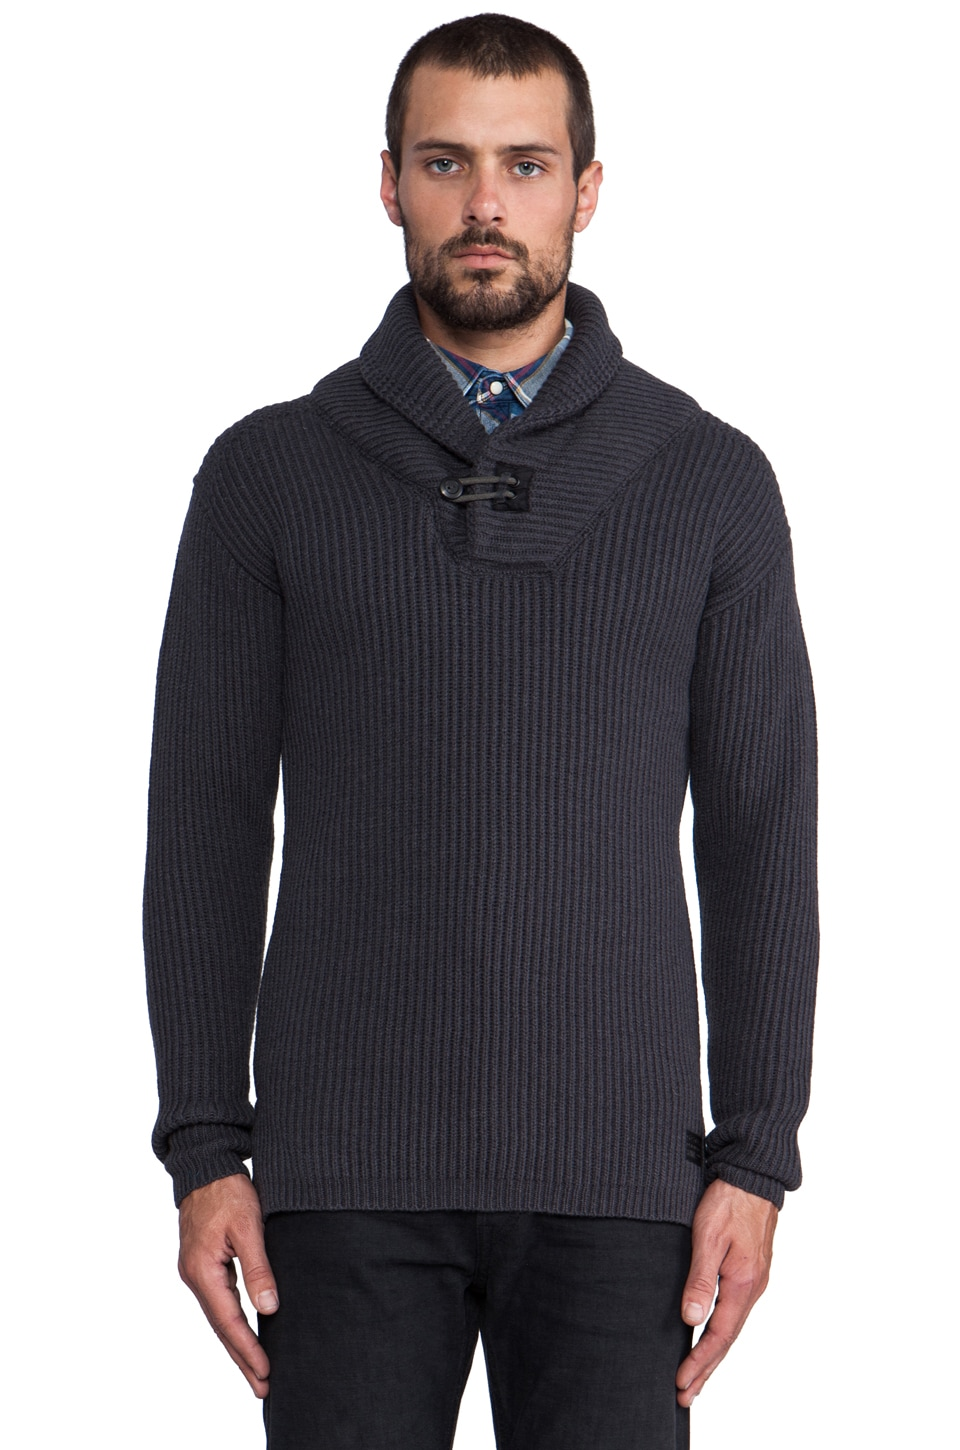 G-Star Diversity Shawl Collar Sweater in MDF